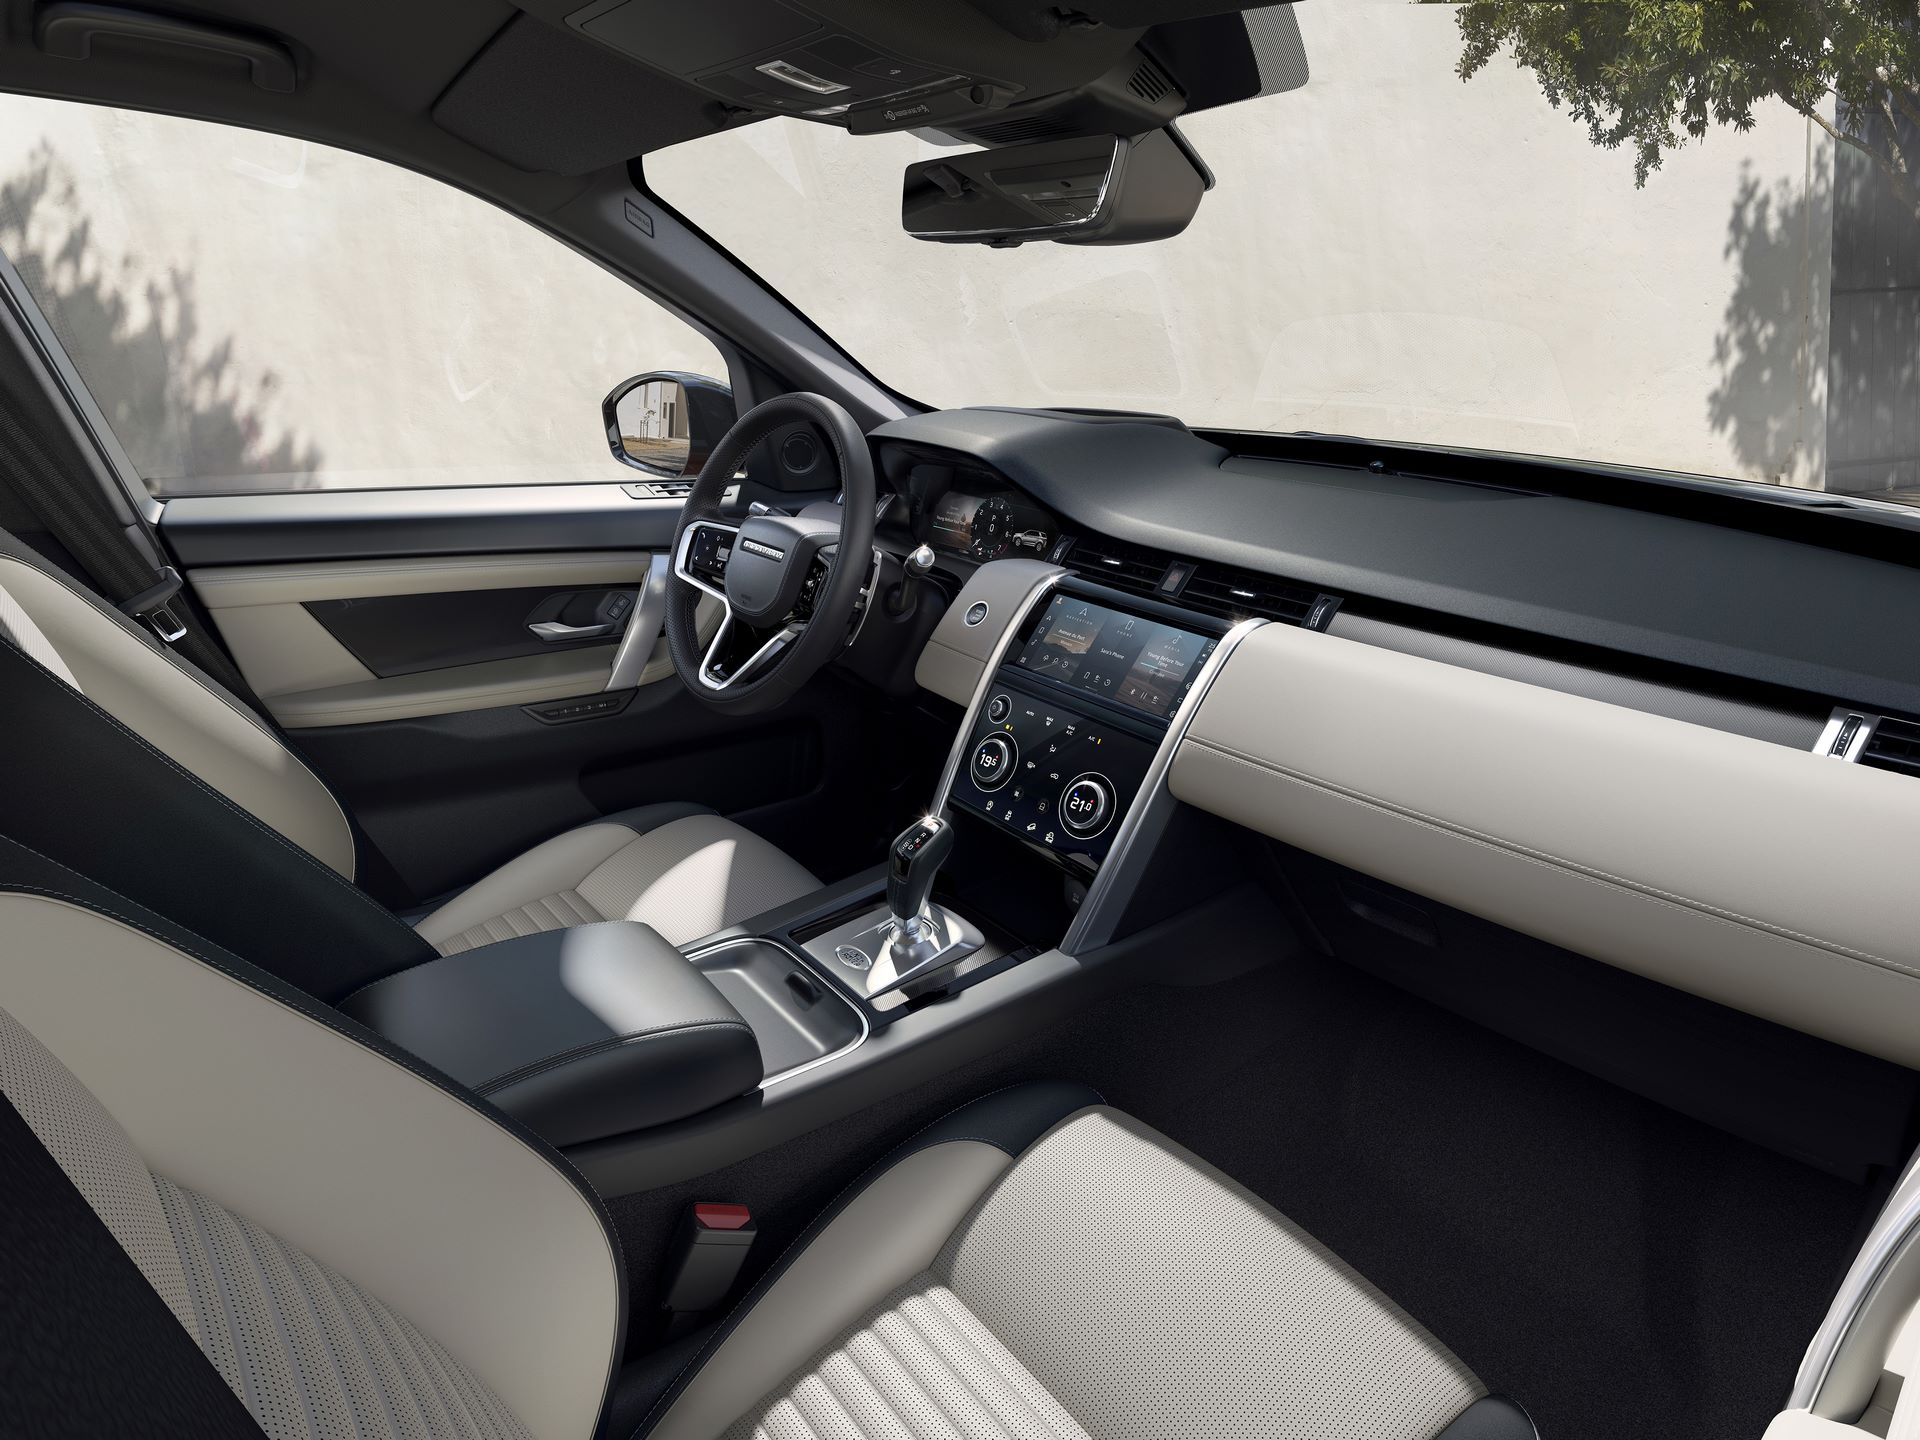 Range-Rover-Evoque-and-Land-Rover-Discovery-Sport-MHEV-diesel-12